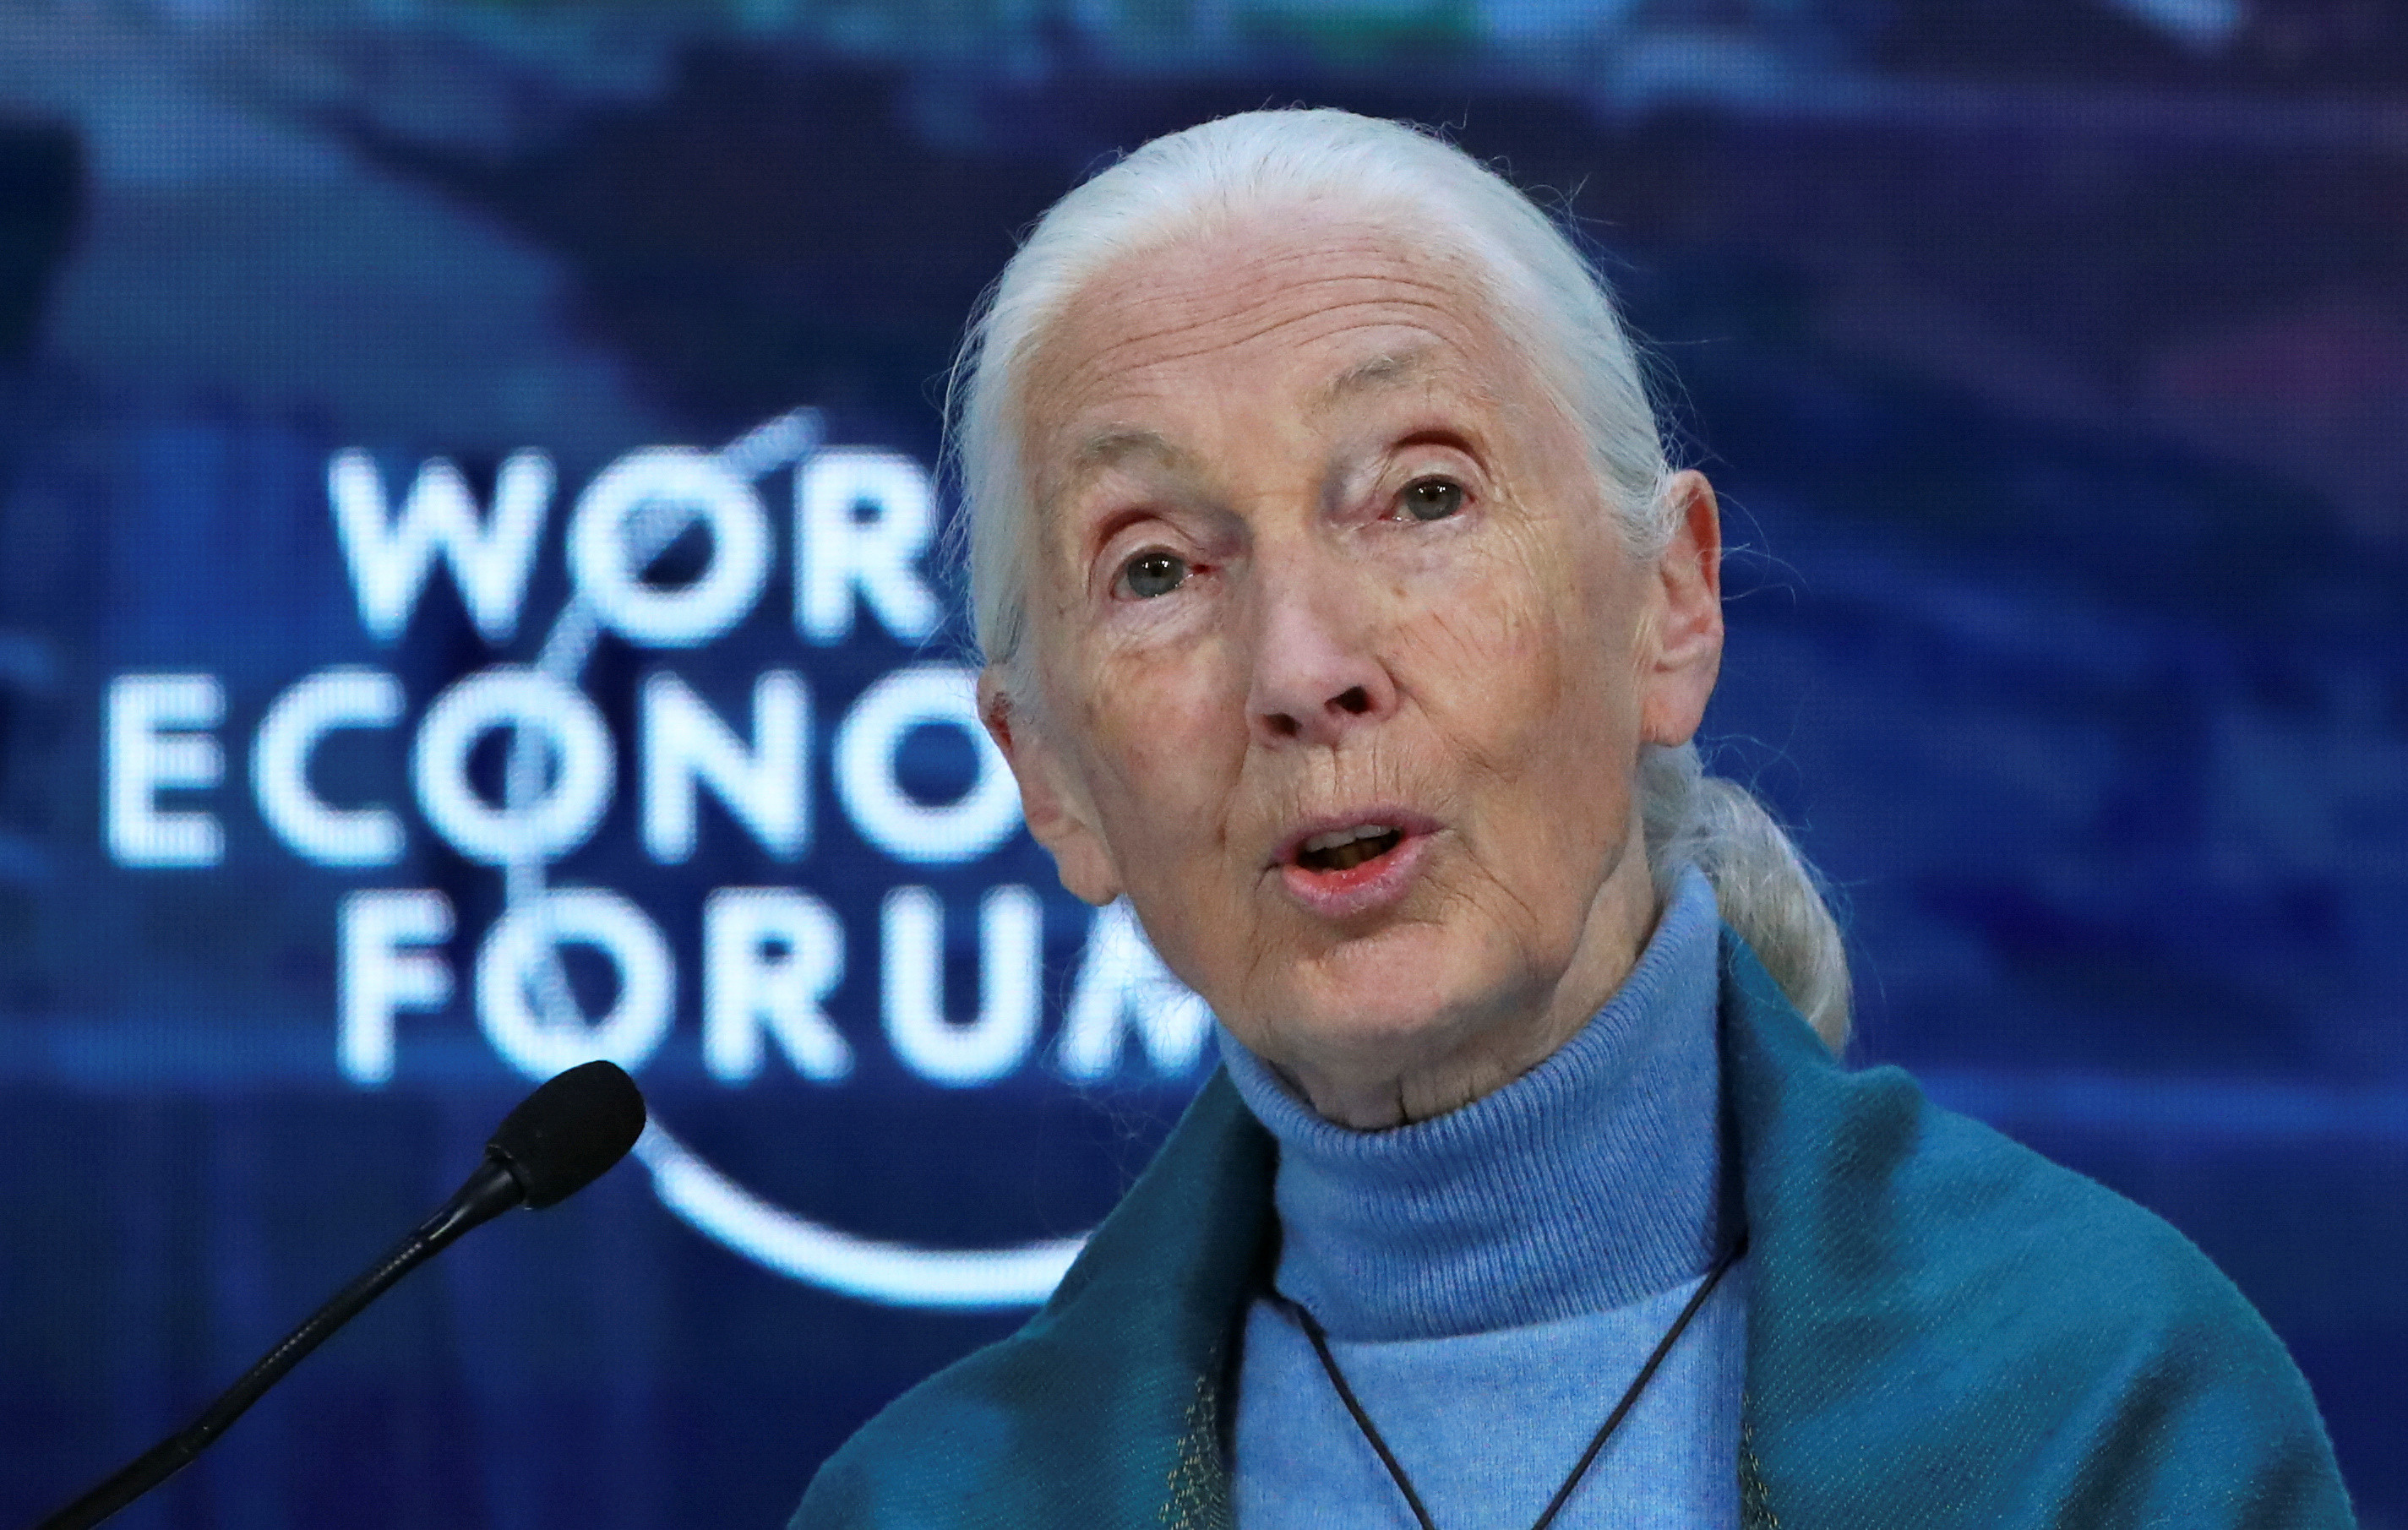 British primatologist, ethologist and anthropologist Jane Goodall attends a session at the 50th World Economic Forum (WEF) annual meeting in Davos, Switzerland, January 22, 2020. REUTERS/Denis Balibouse - RC21LE9CLFA5